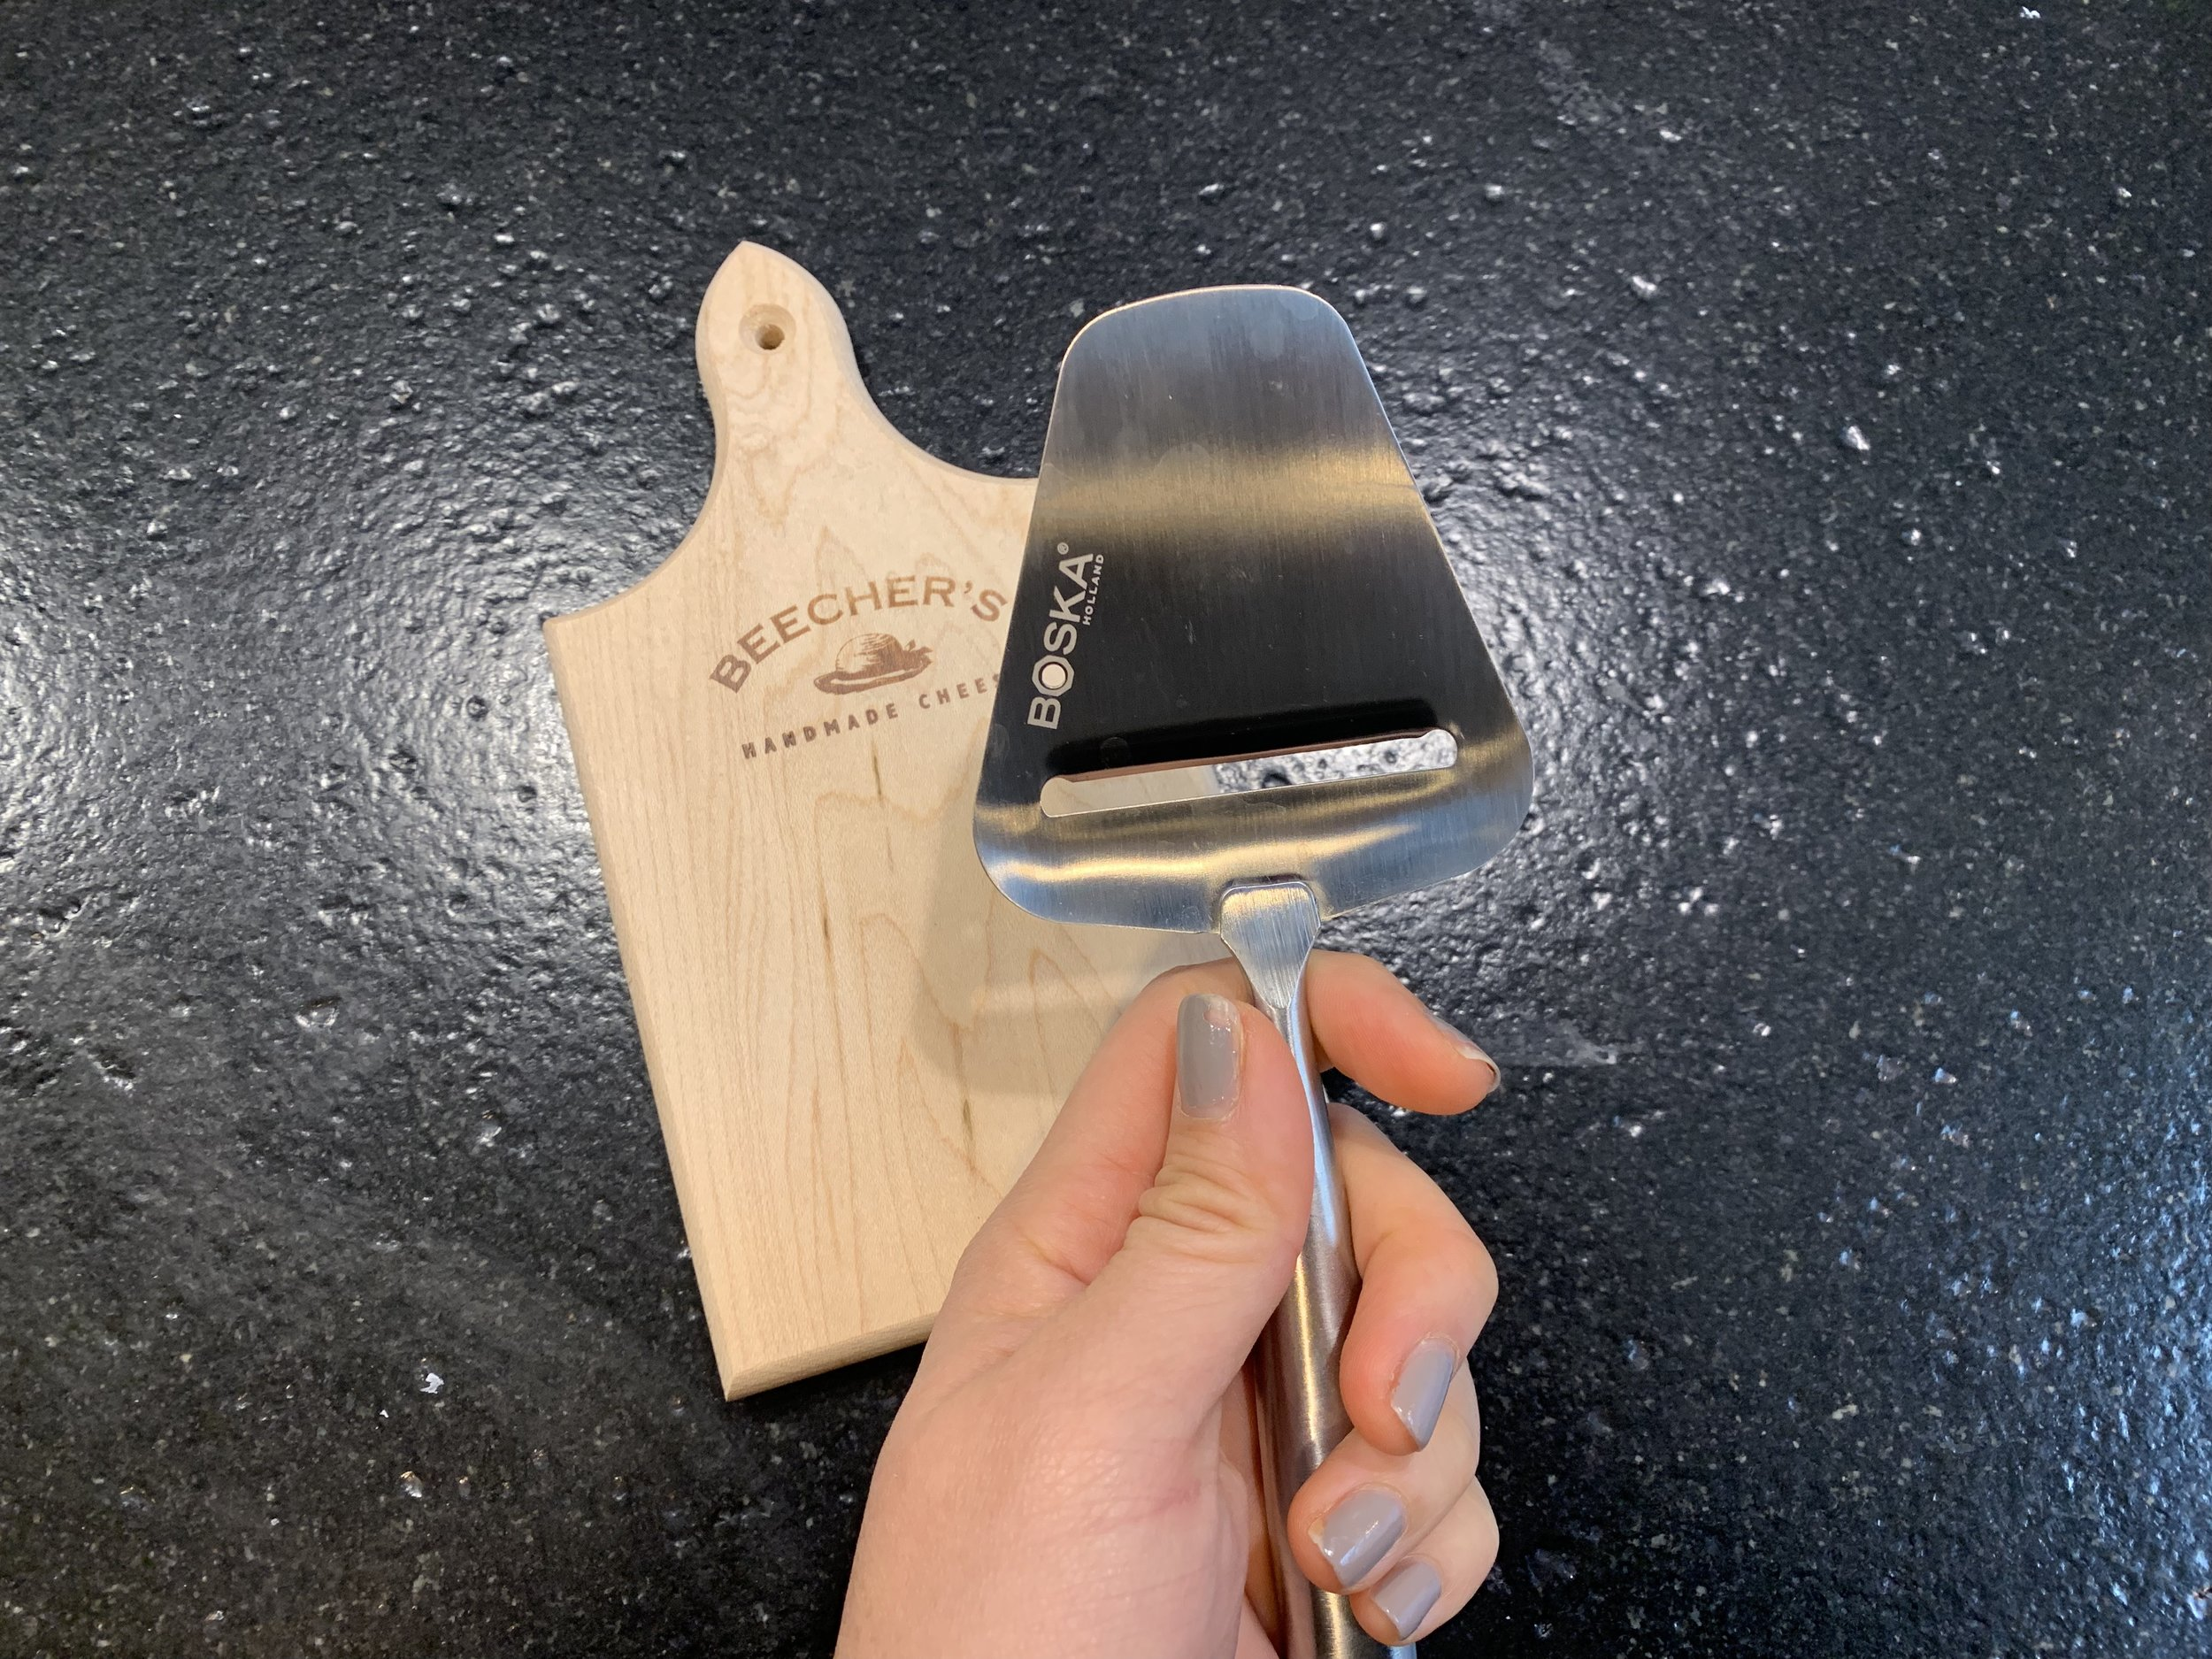 Gouda have this… - I have it on good authority that every Dutch kitchen has a Kaasschaaf (cheese slicer). It slices perfect slices of hard cheeses at consistent thickness to make for great serving. I got mine from Amazon, but made by a Ditch company - Boska. This will make a great gift for any cheese-loving family.